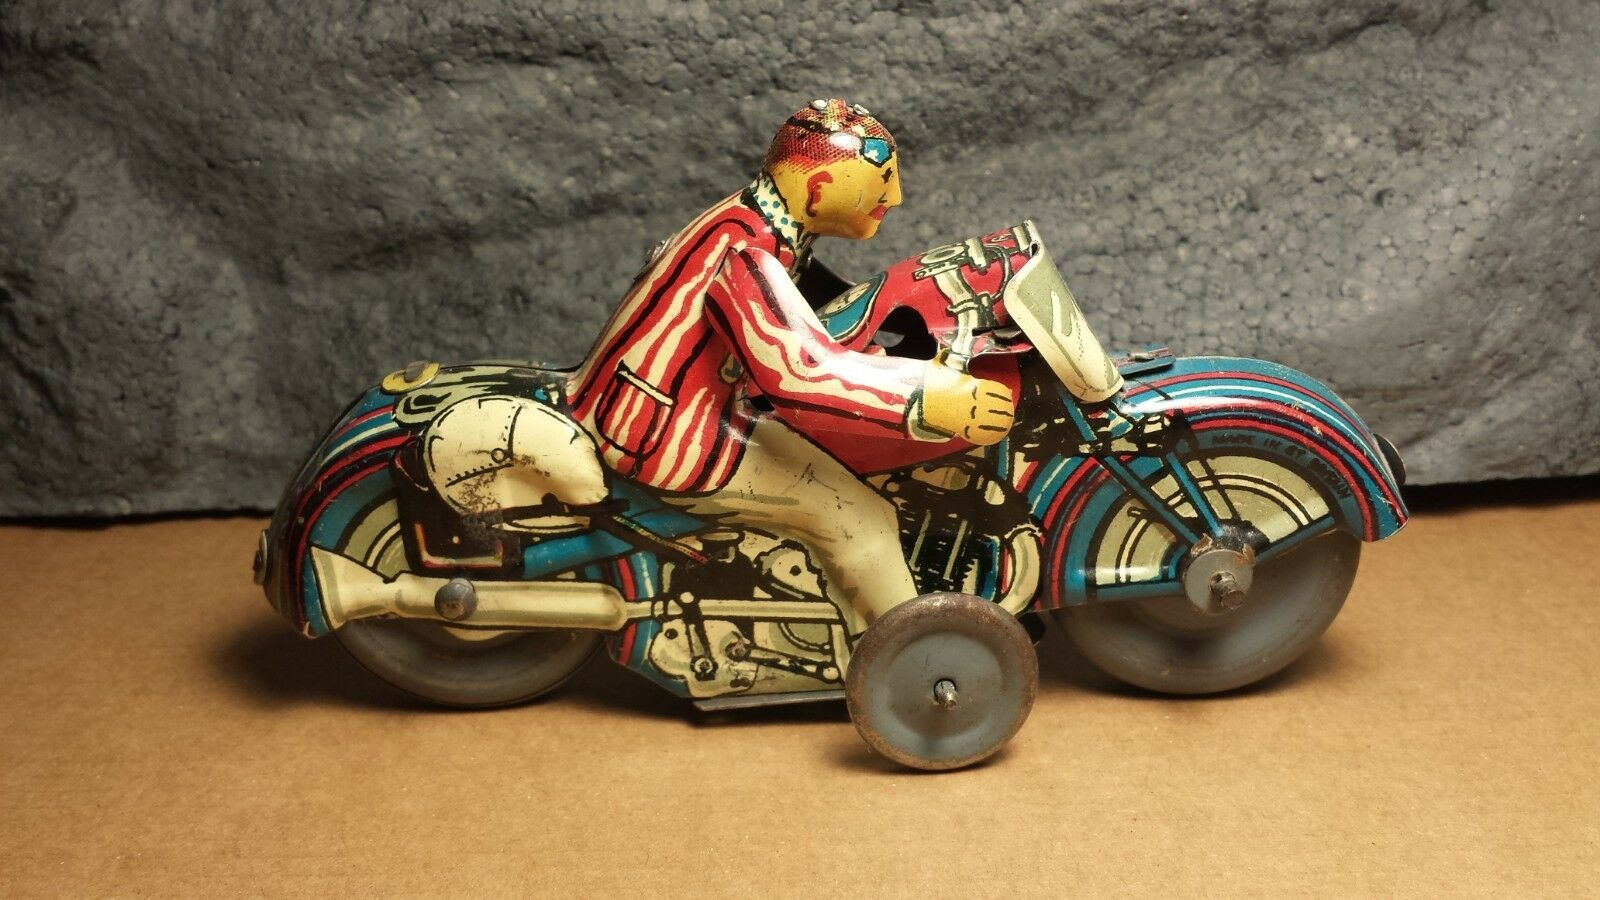 Rare Mettoy   6 6 6  Gentleman Motorcycle   Good Condition   Motor Does NOT Work 036ff7